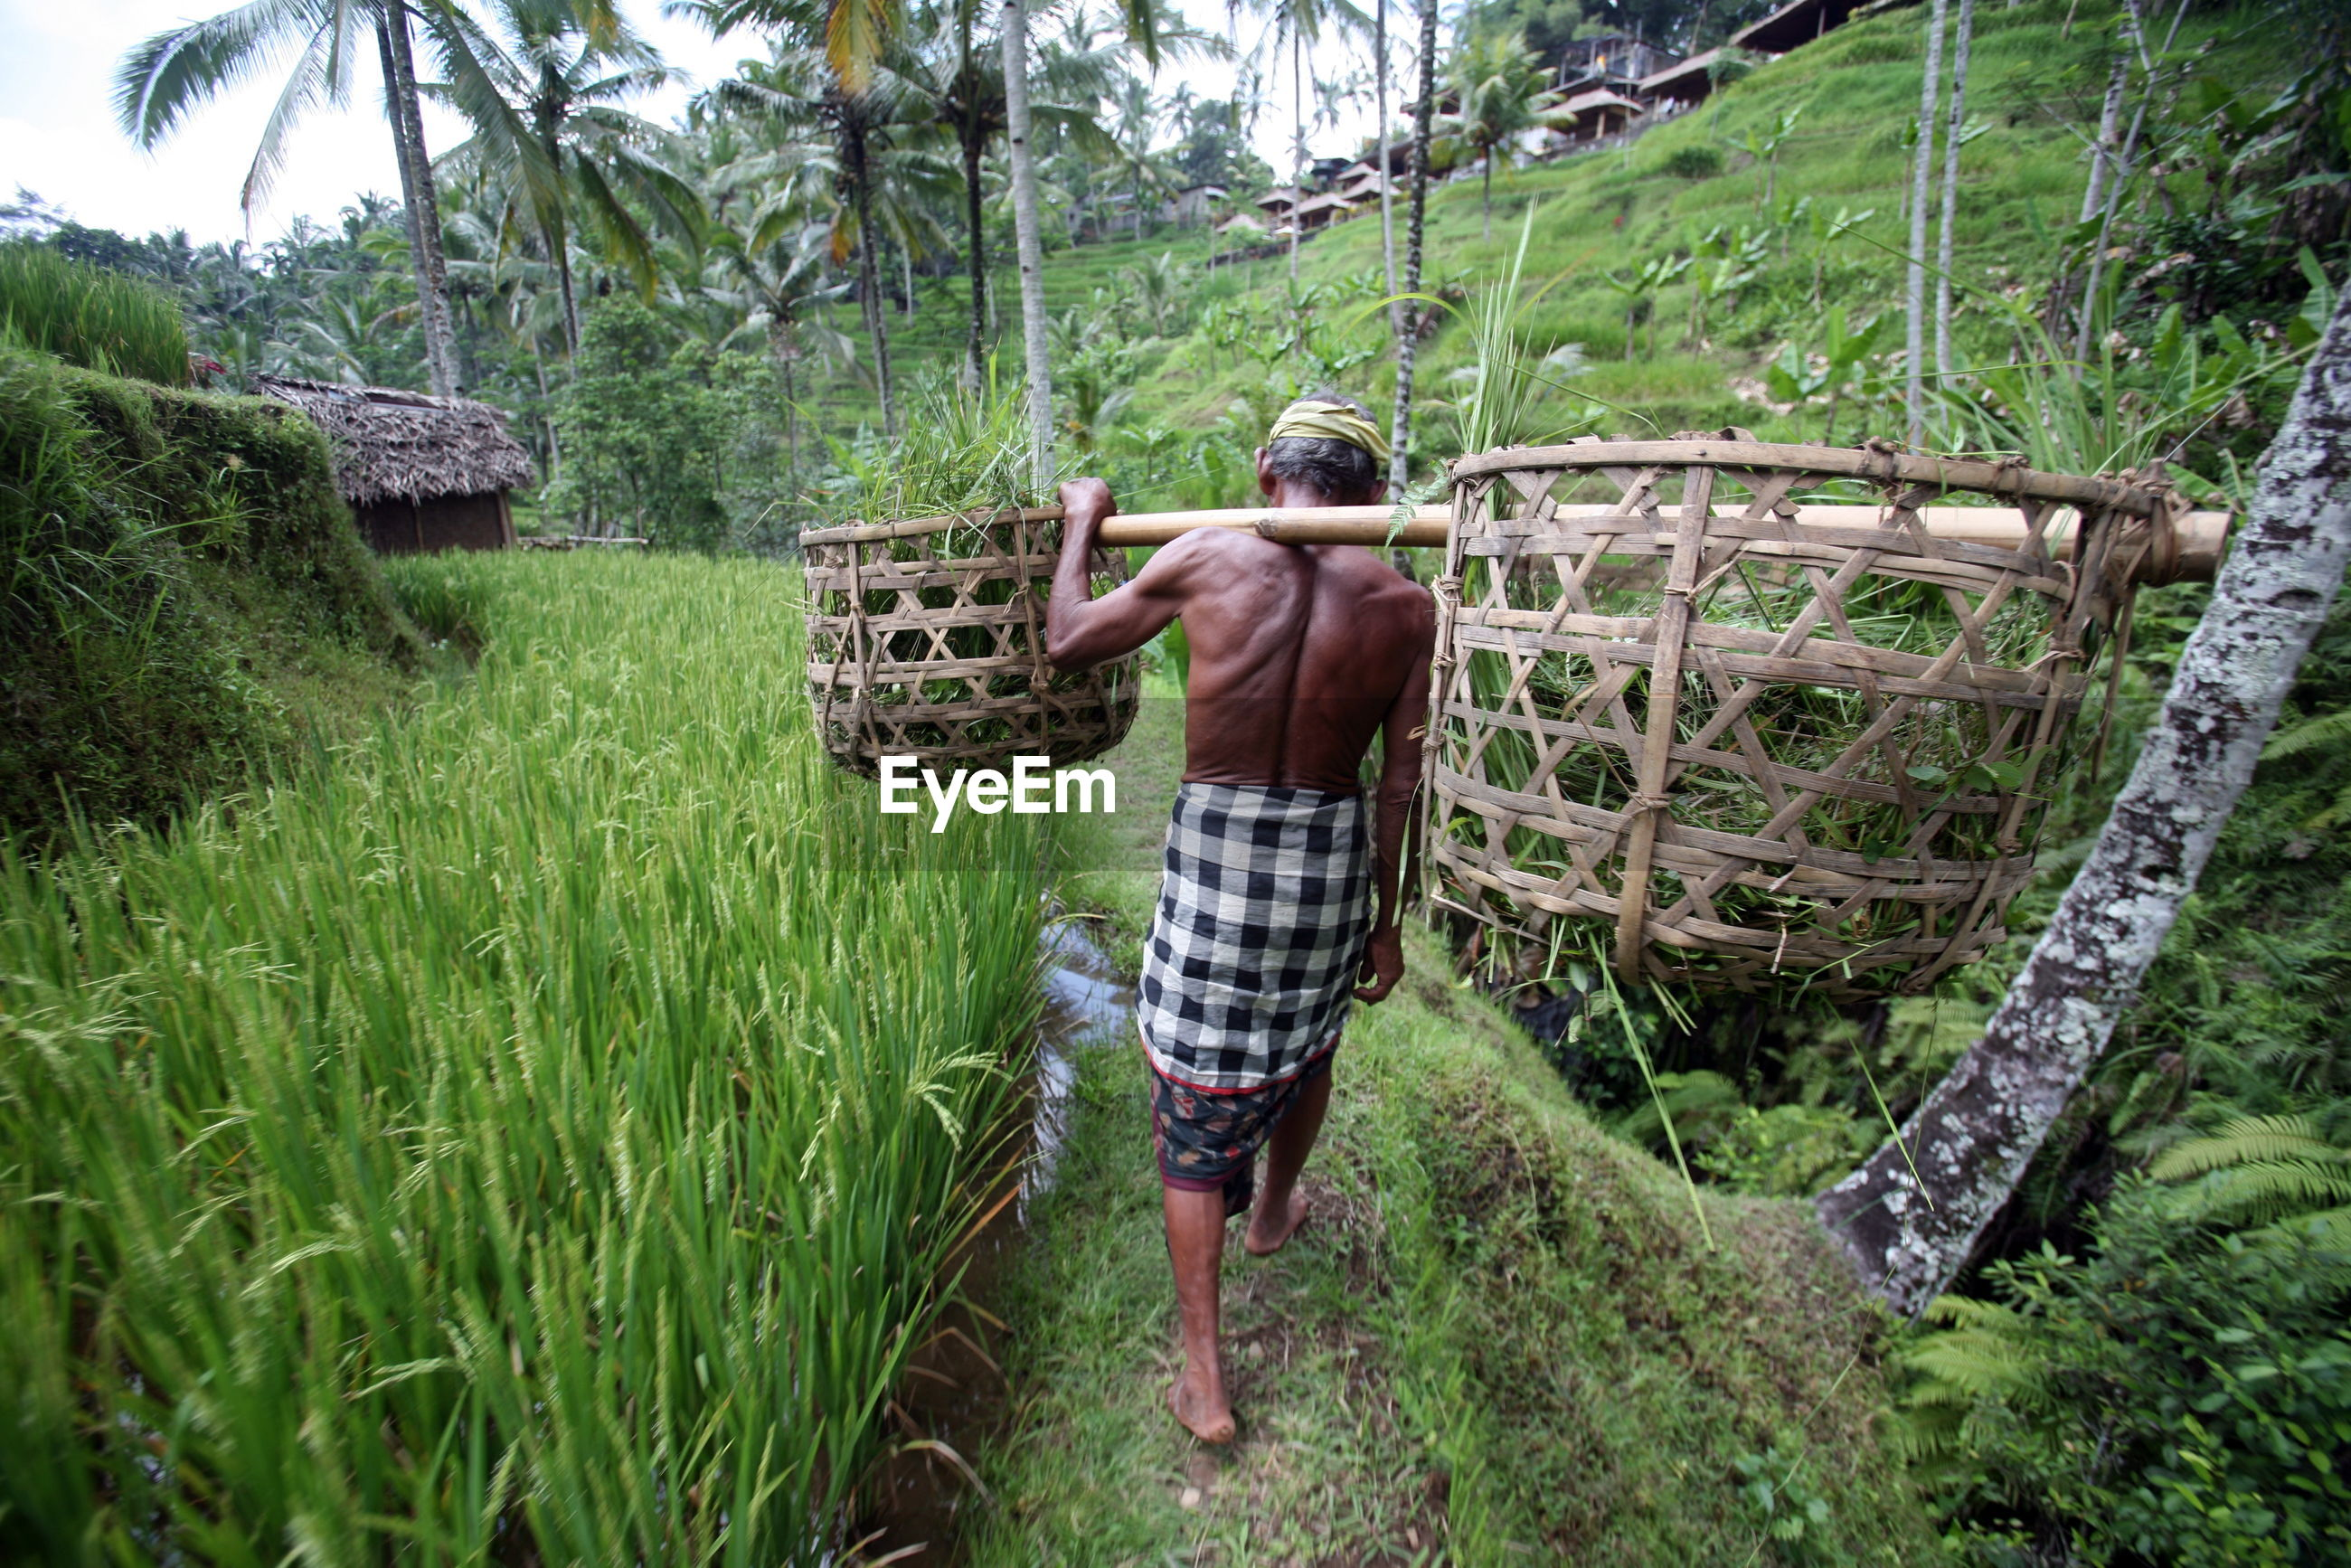 Full length rear view of shirtless farmer walking on rice paddy field